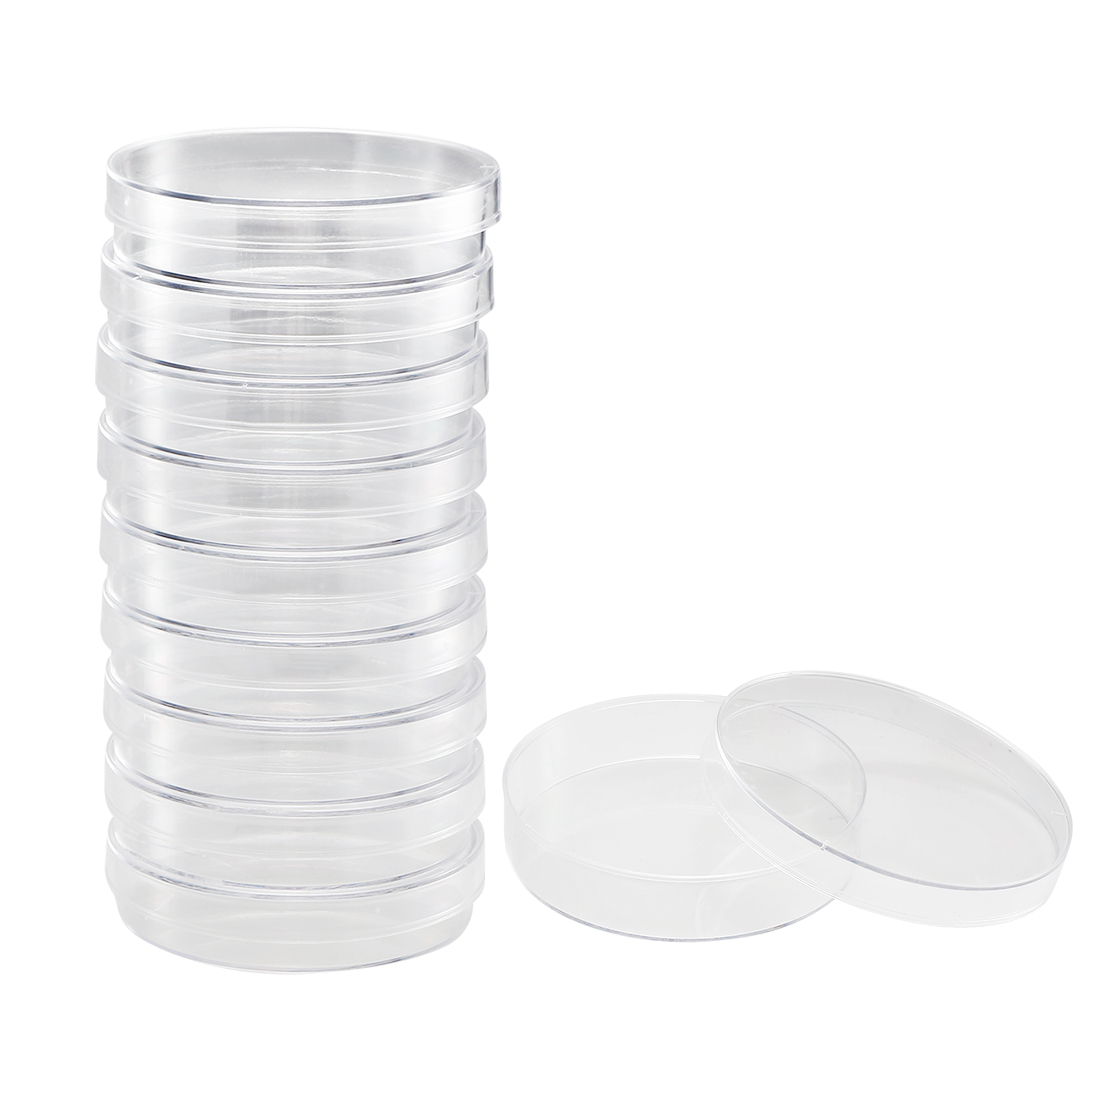 Plastic Petri Dish Plates Tissue Culture Plate, 70mm OD, 16mm Height, 10 Pack